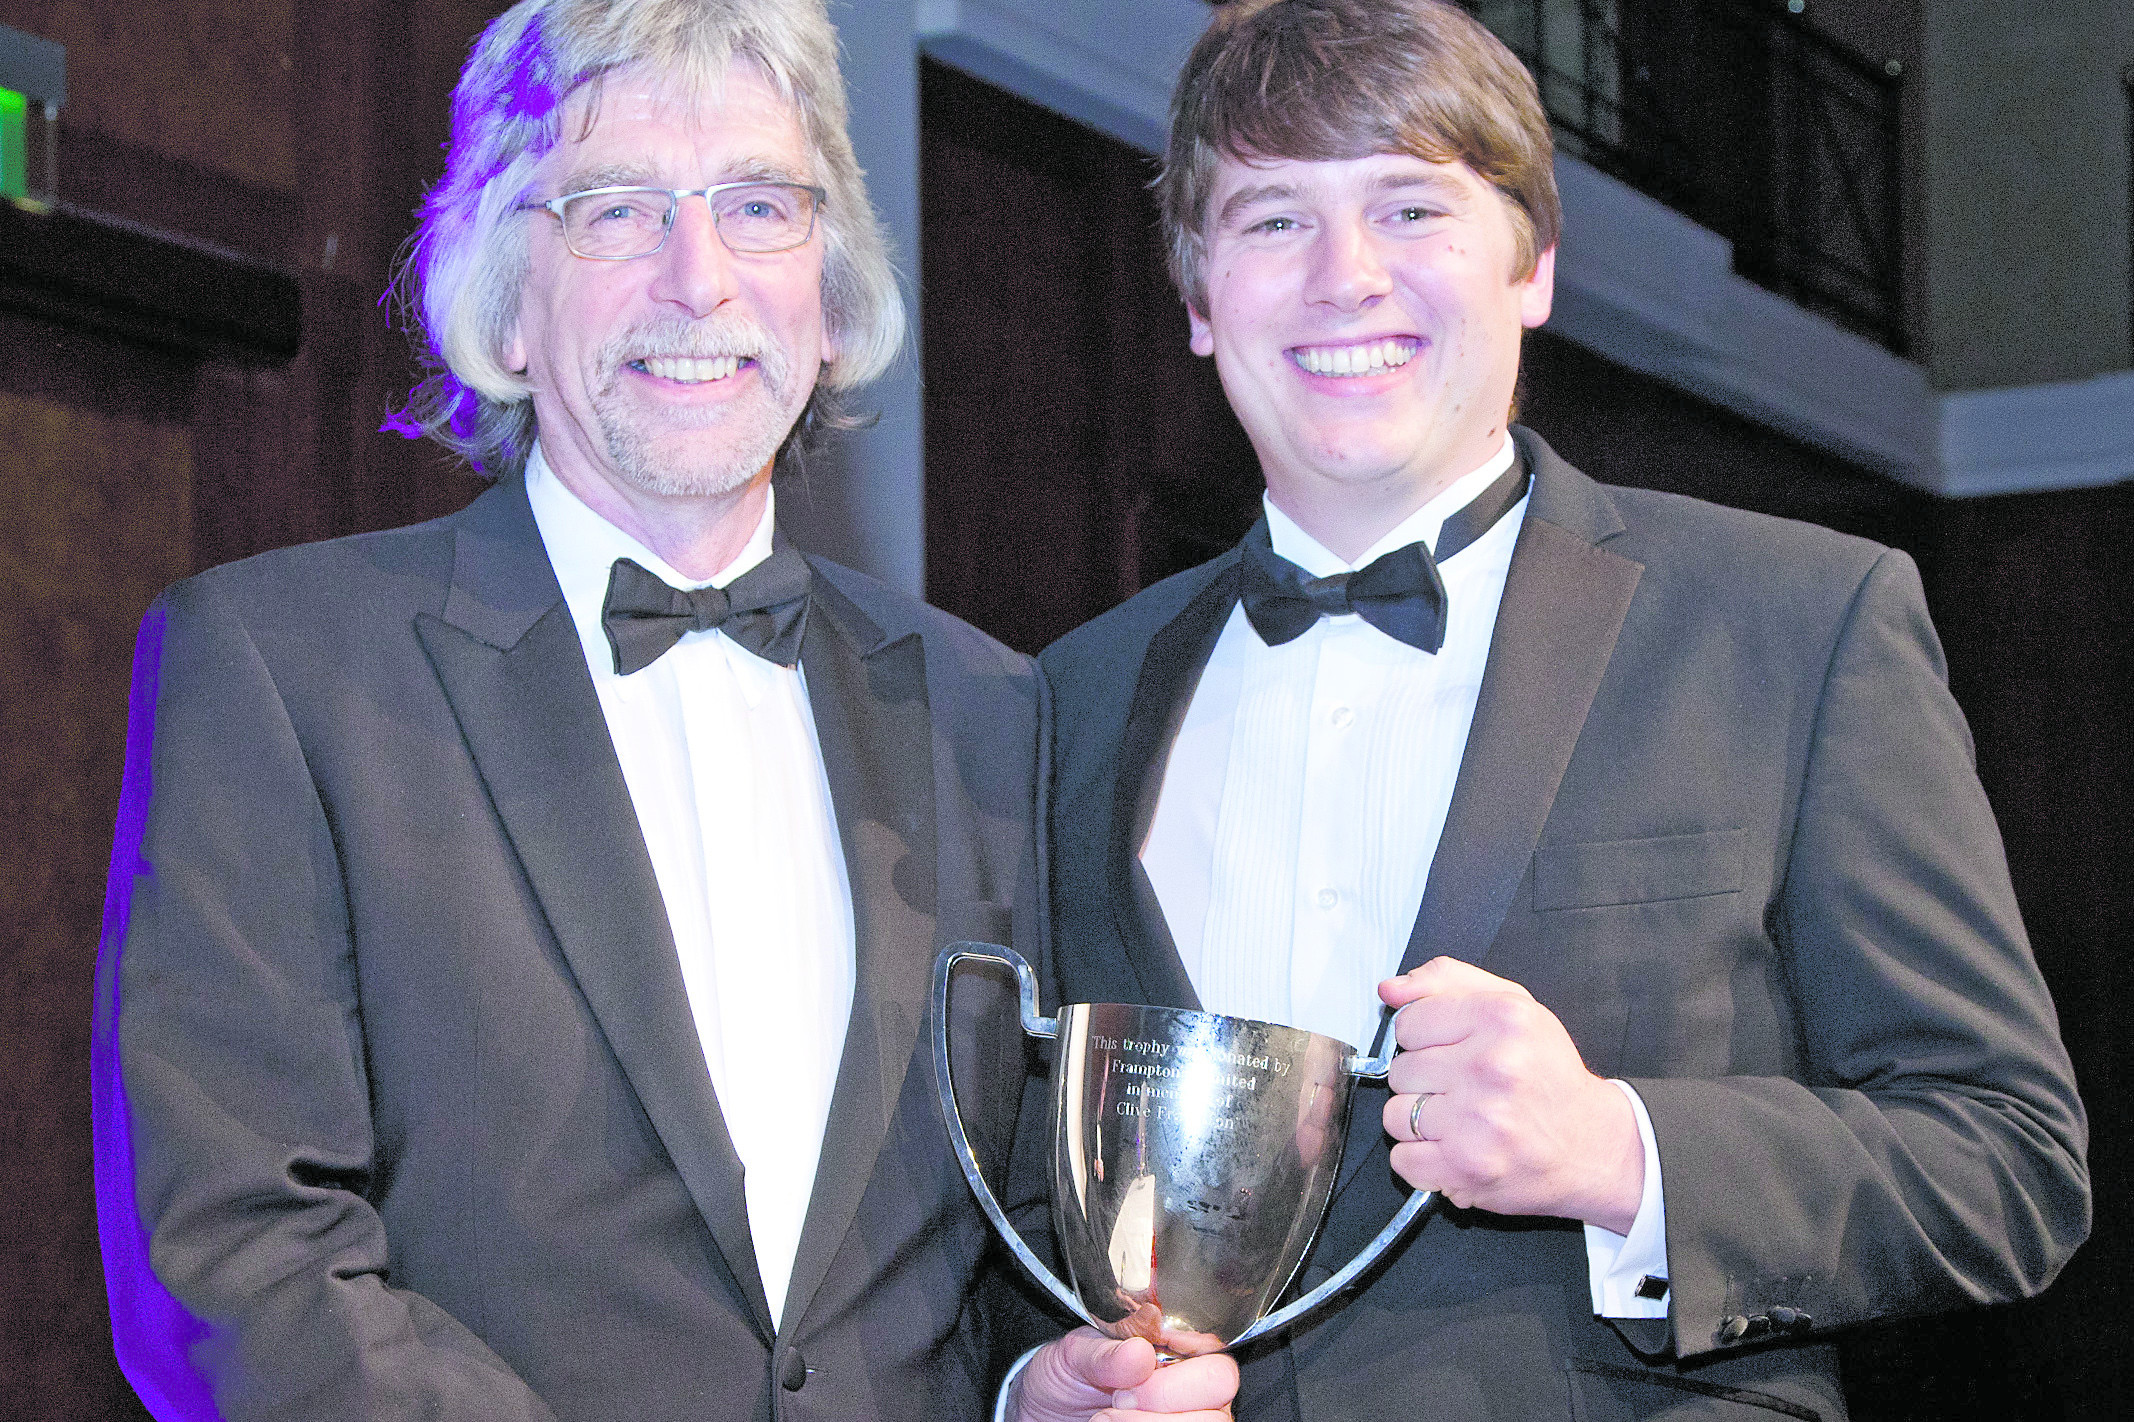 Last year's Young Poultry Person of the Year award was presented to Stephen Pace, right. Photo: Jon Page